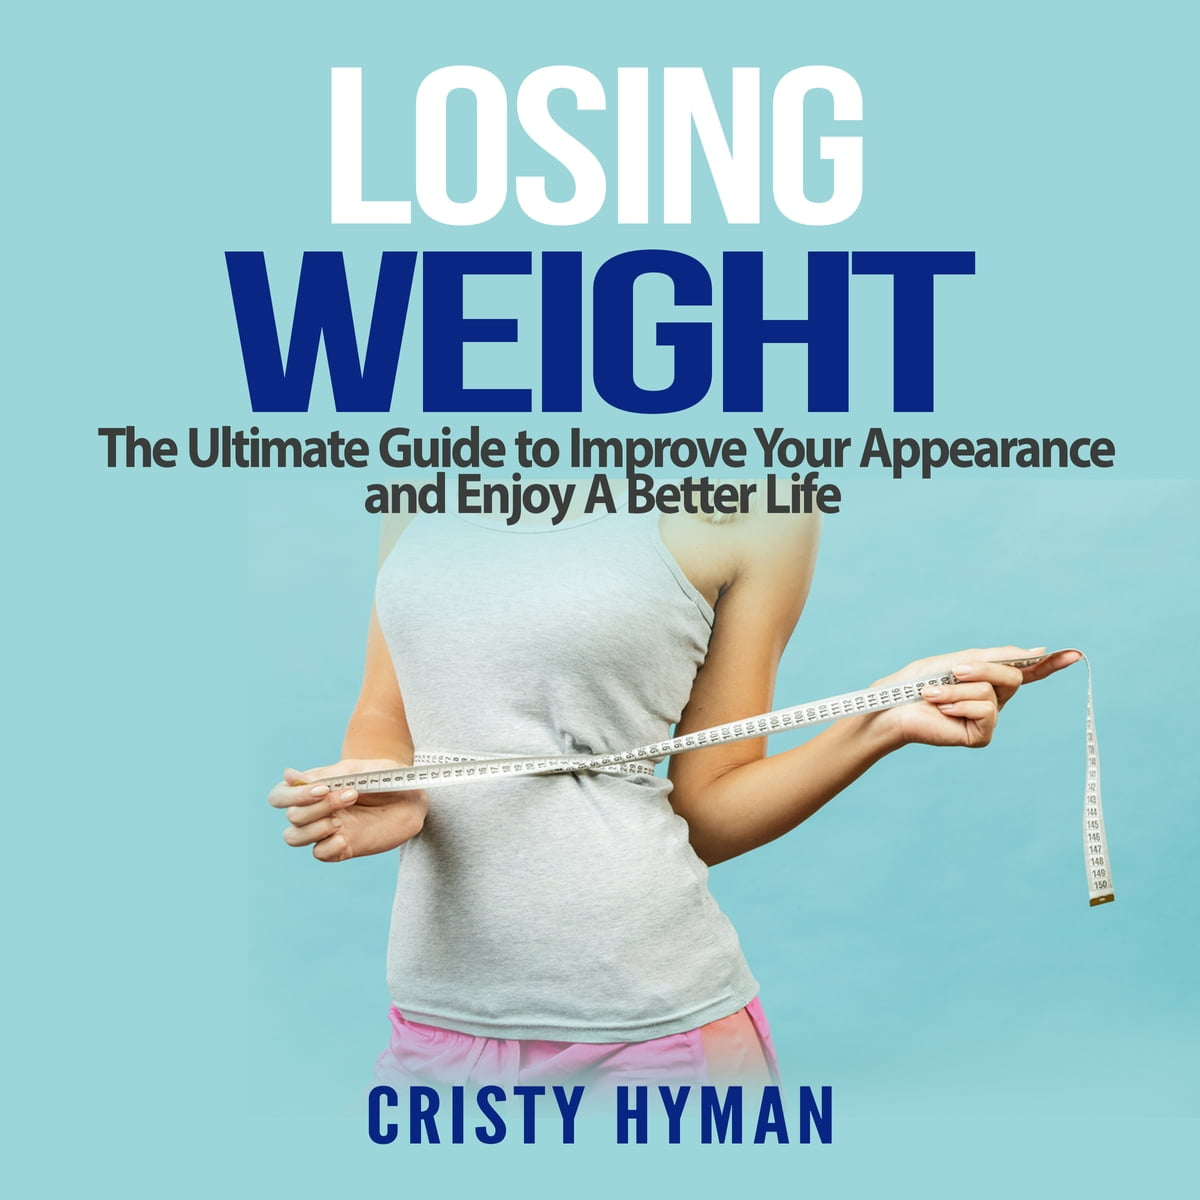 Image result for losing weight cristy hyman